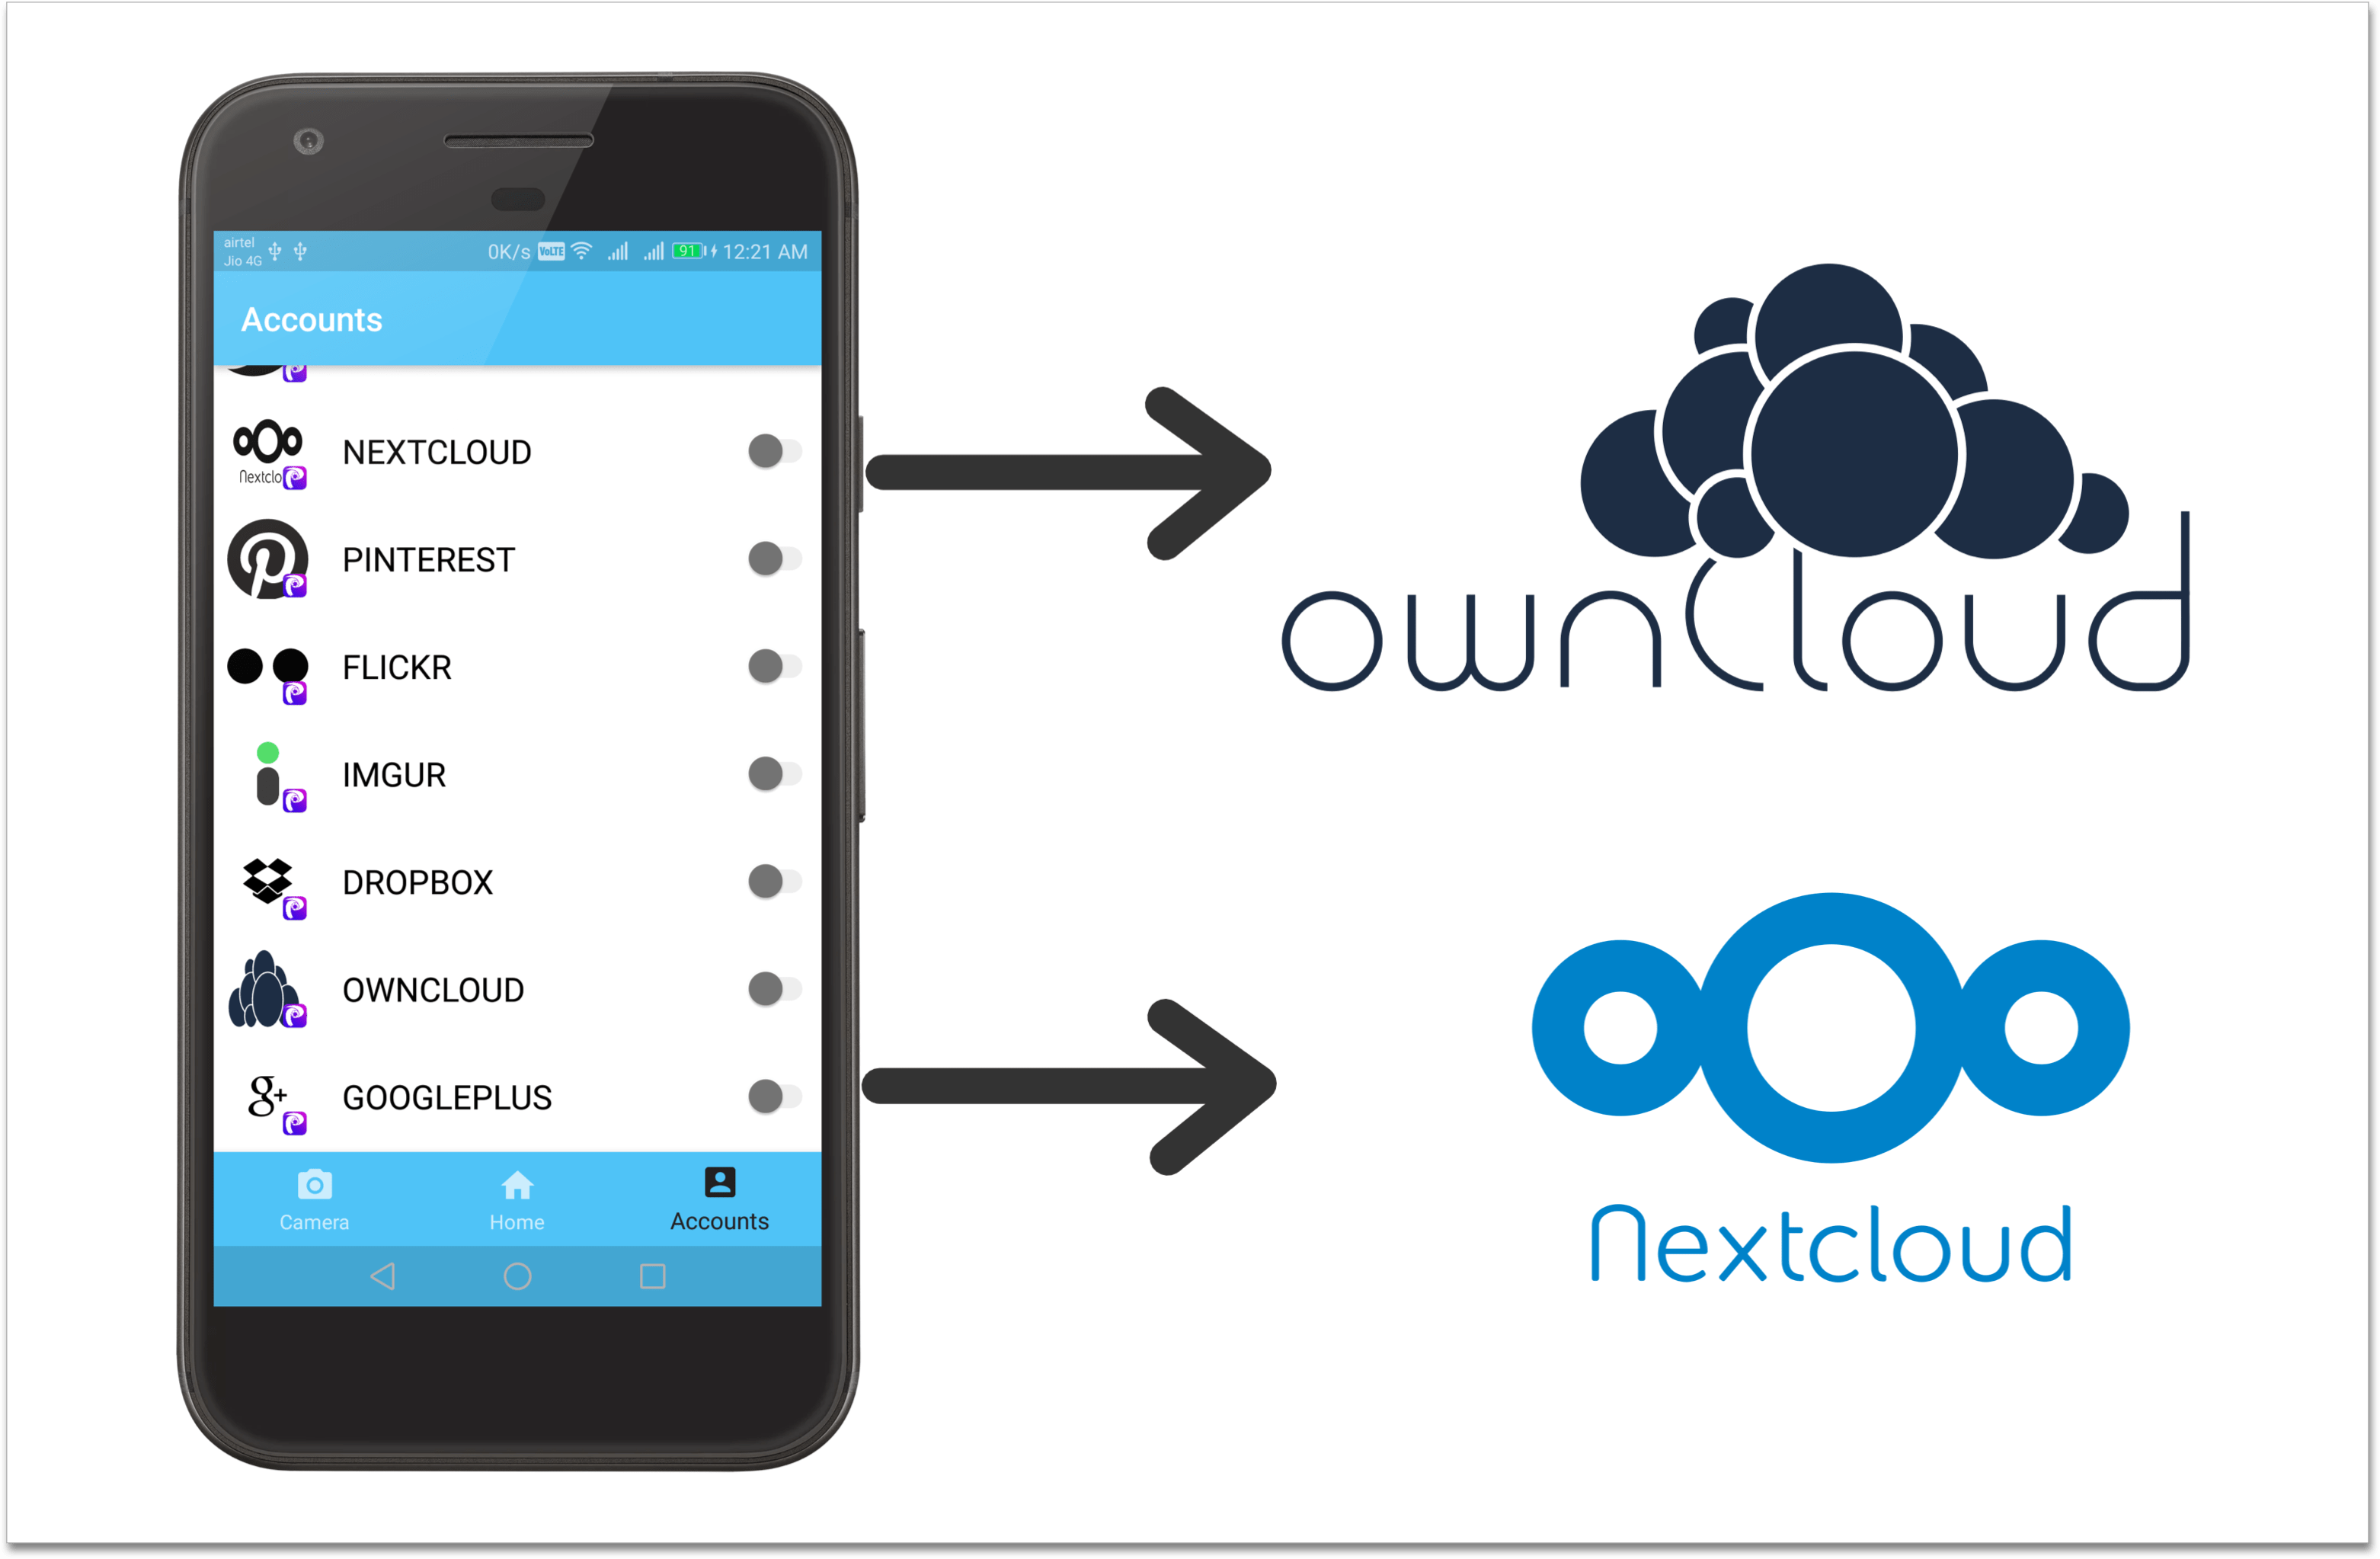 Upload Images to OwnCloud and NextCloud in Phimpme Android